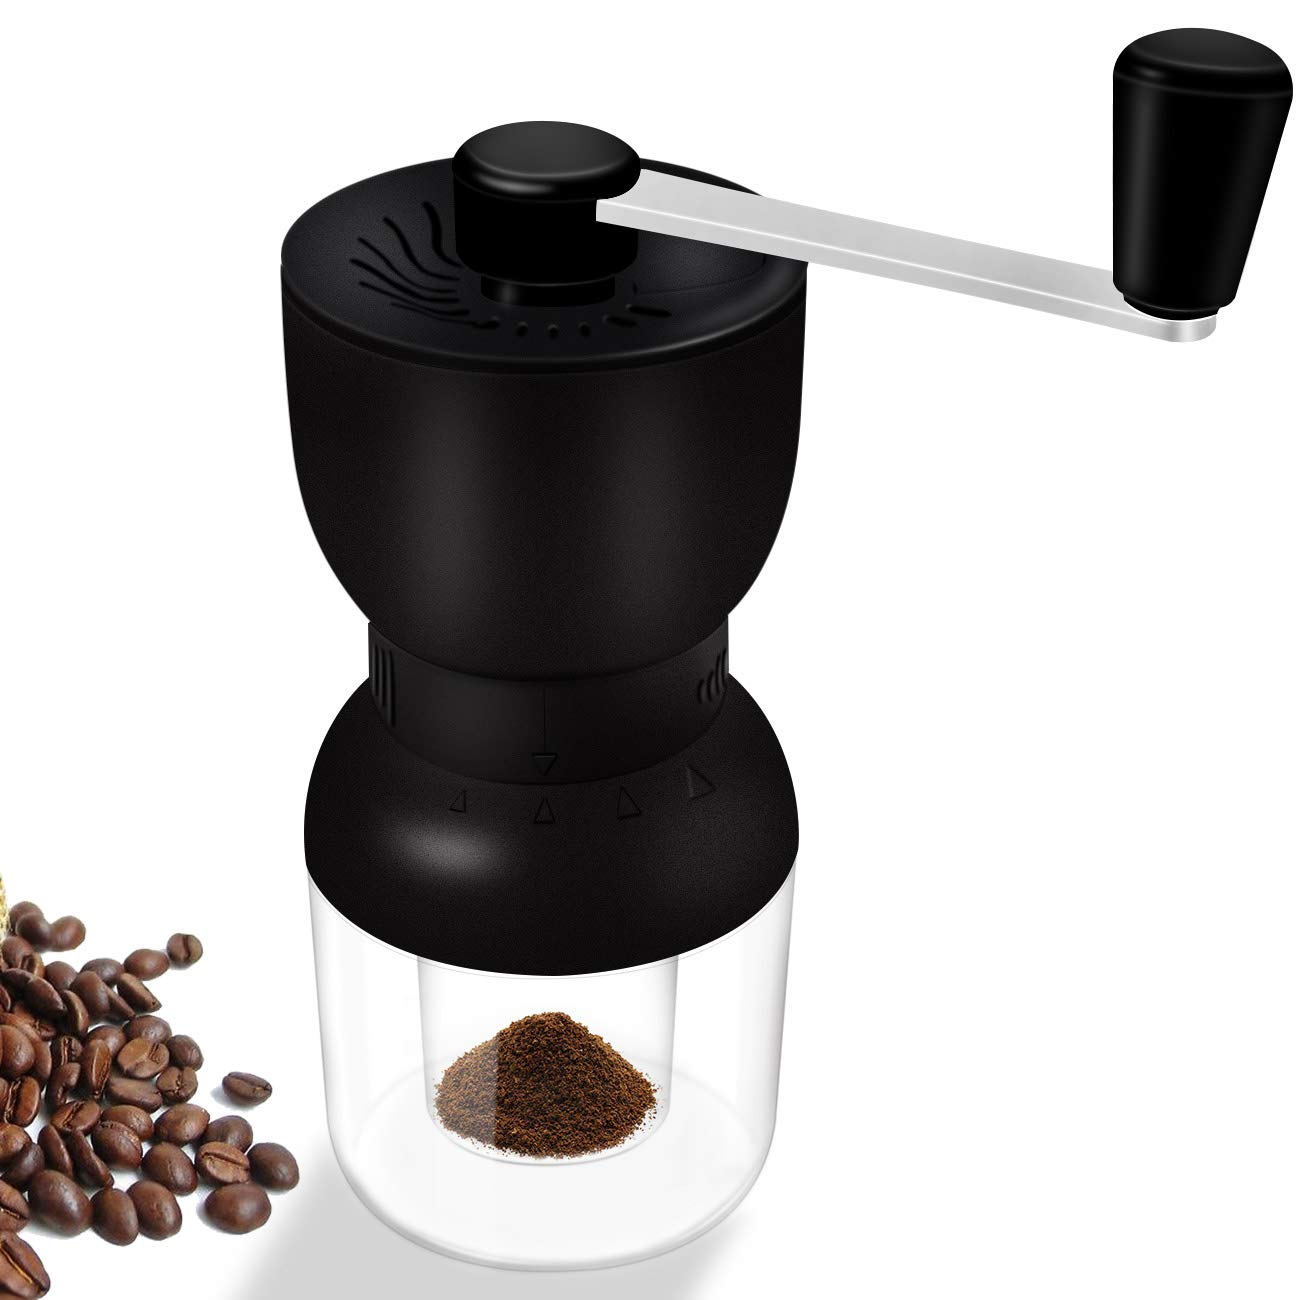 Manual Coffee Grinder, LHS Ceramic Coffee Mill Fine Conical Ceramic Burrs Black,2 Size Clear Glass Jars Infinitely Adjustment Nut Grind Removable Hand Crank Coffee Mill Quiet and Portable for Travel